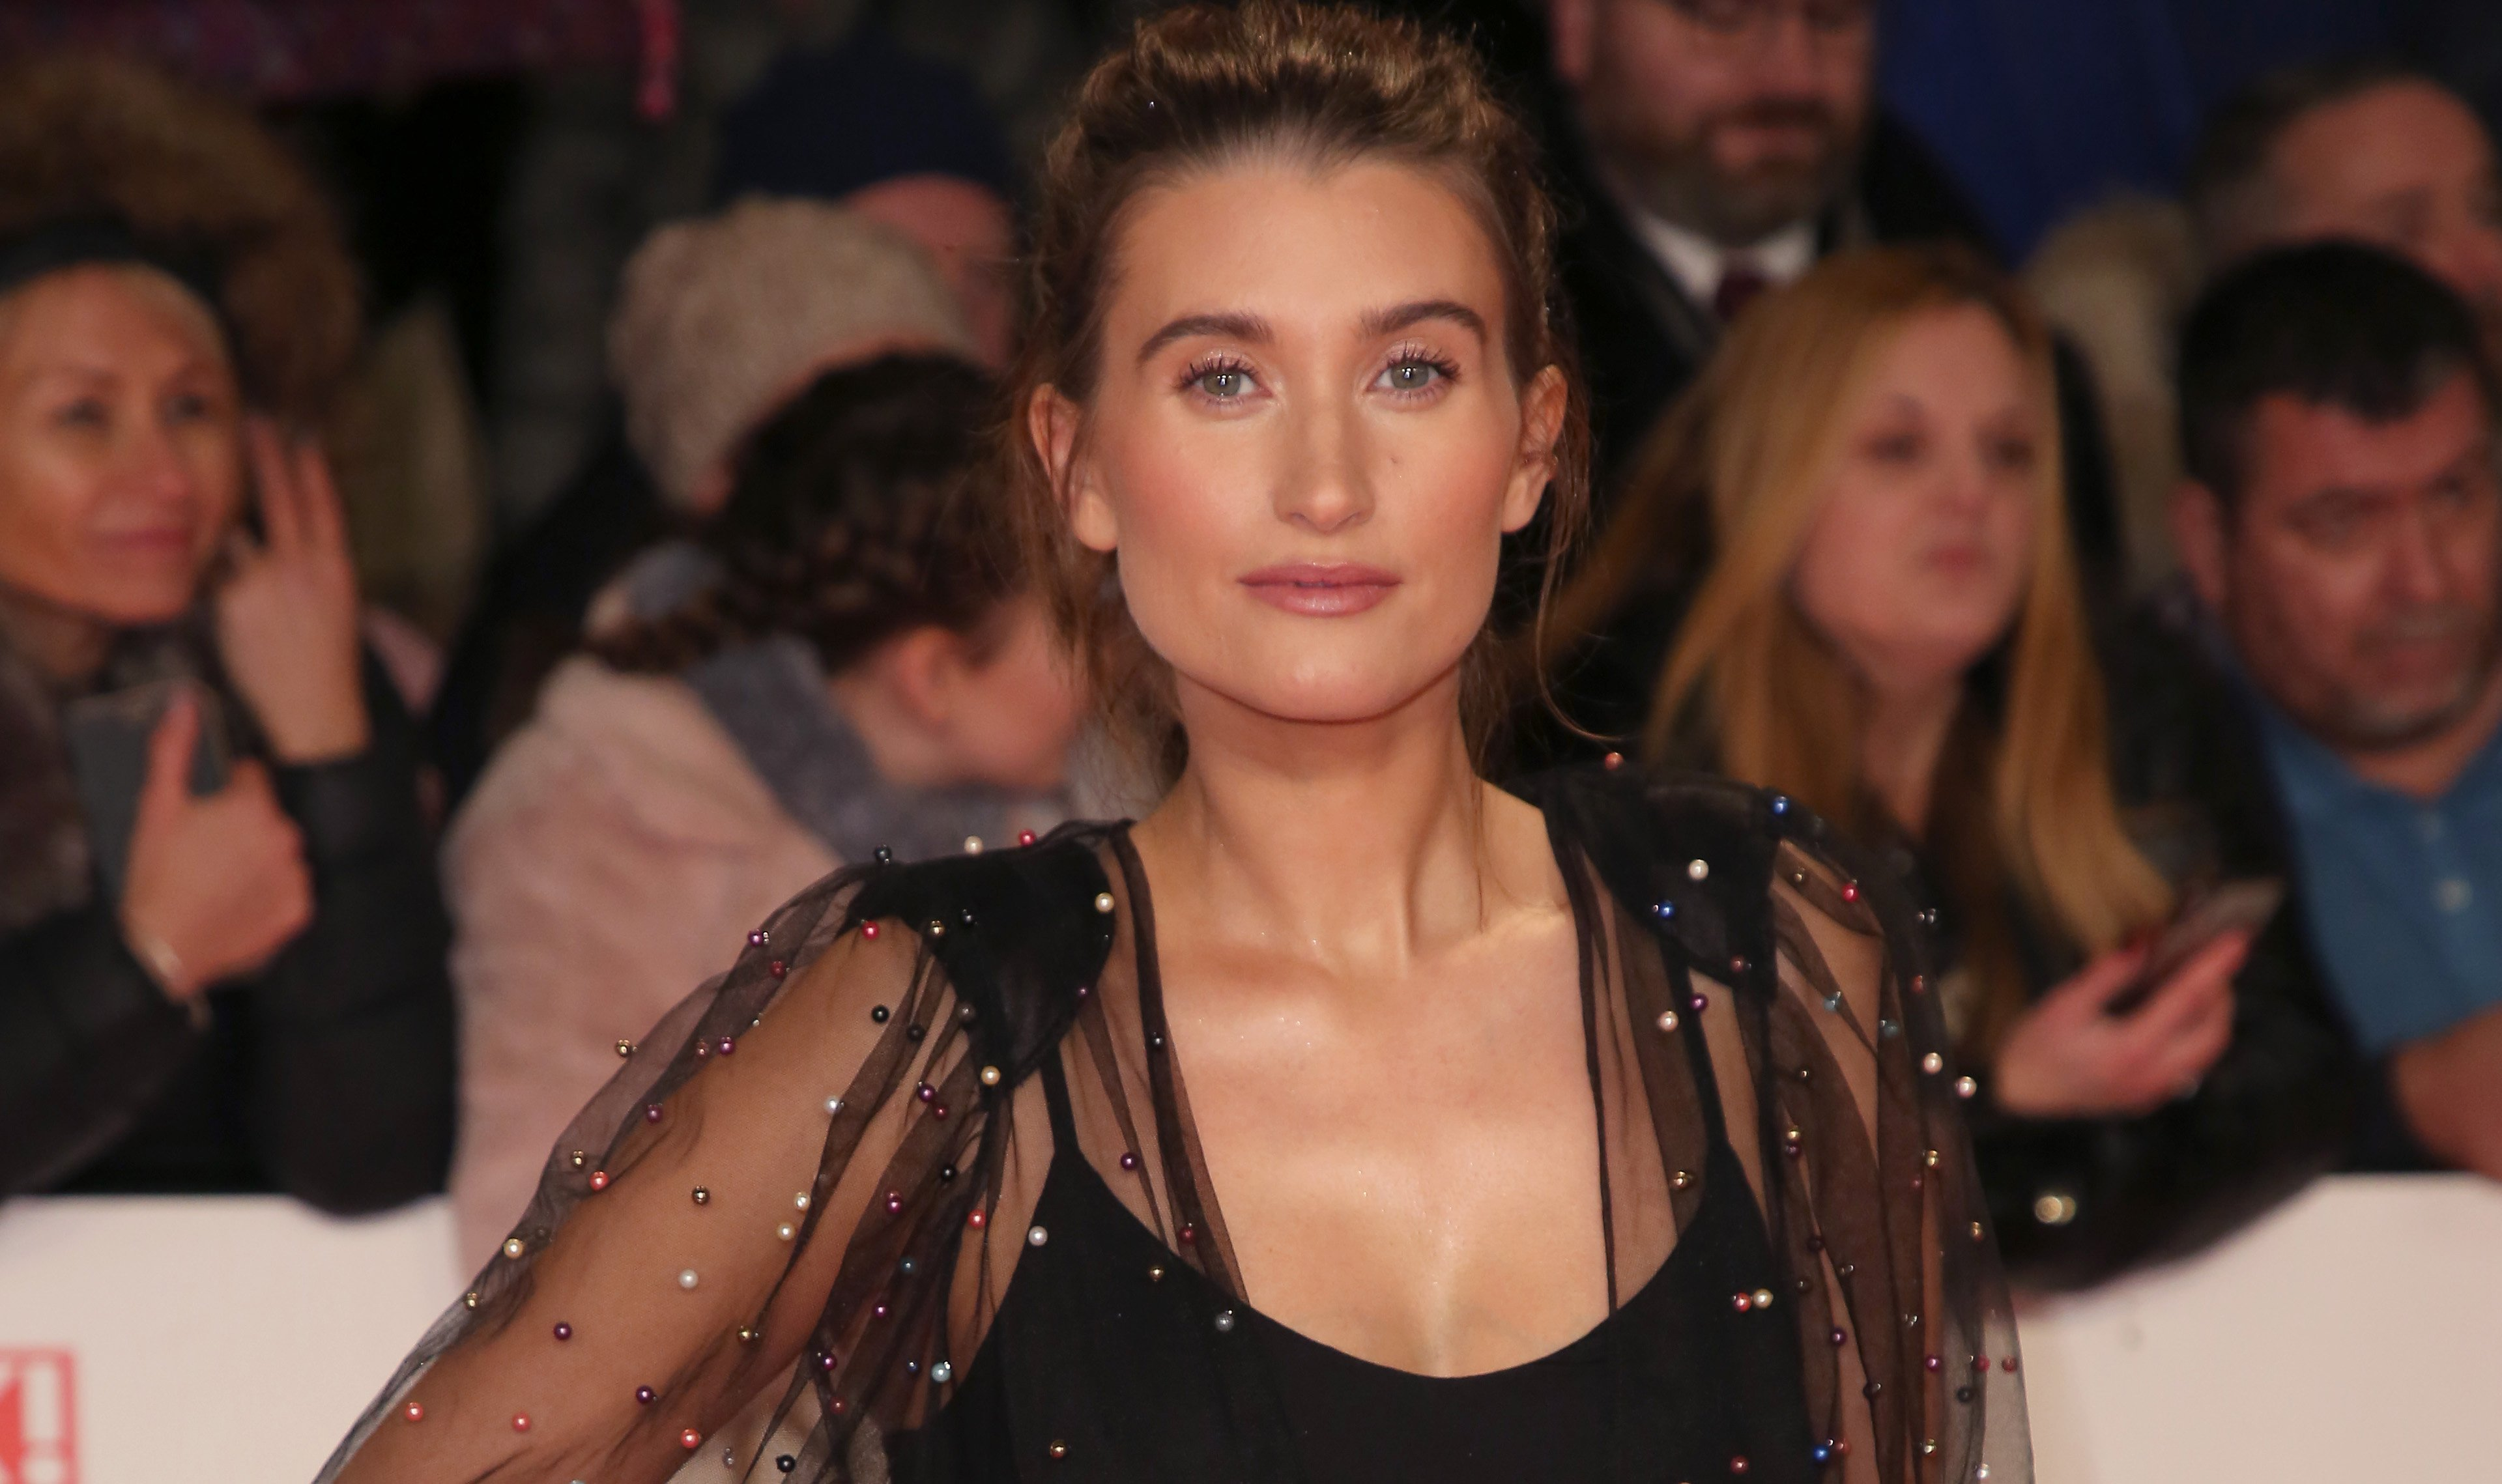 Emmerdale star Charley Webb opens up about 'pressures' of third pregnancy